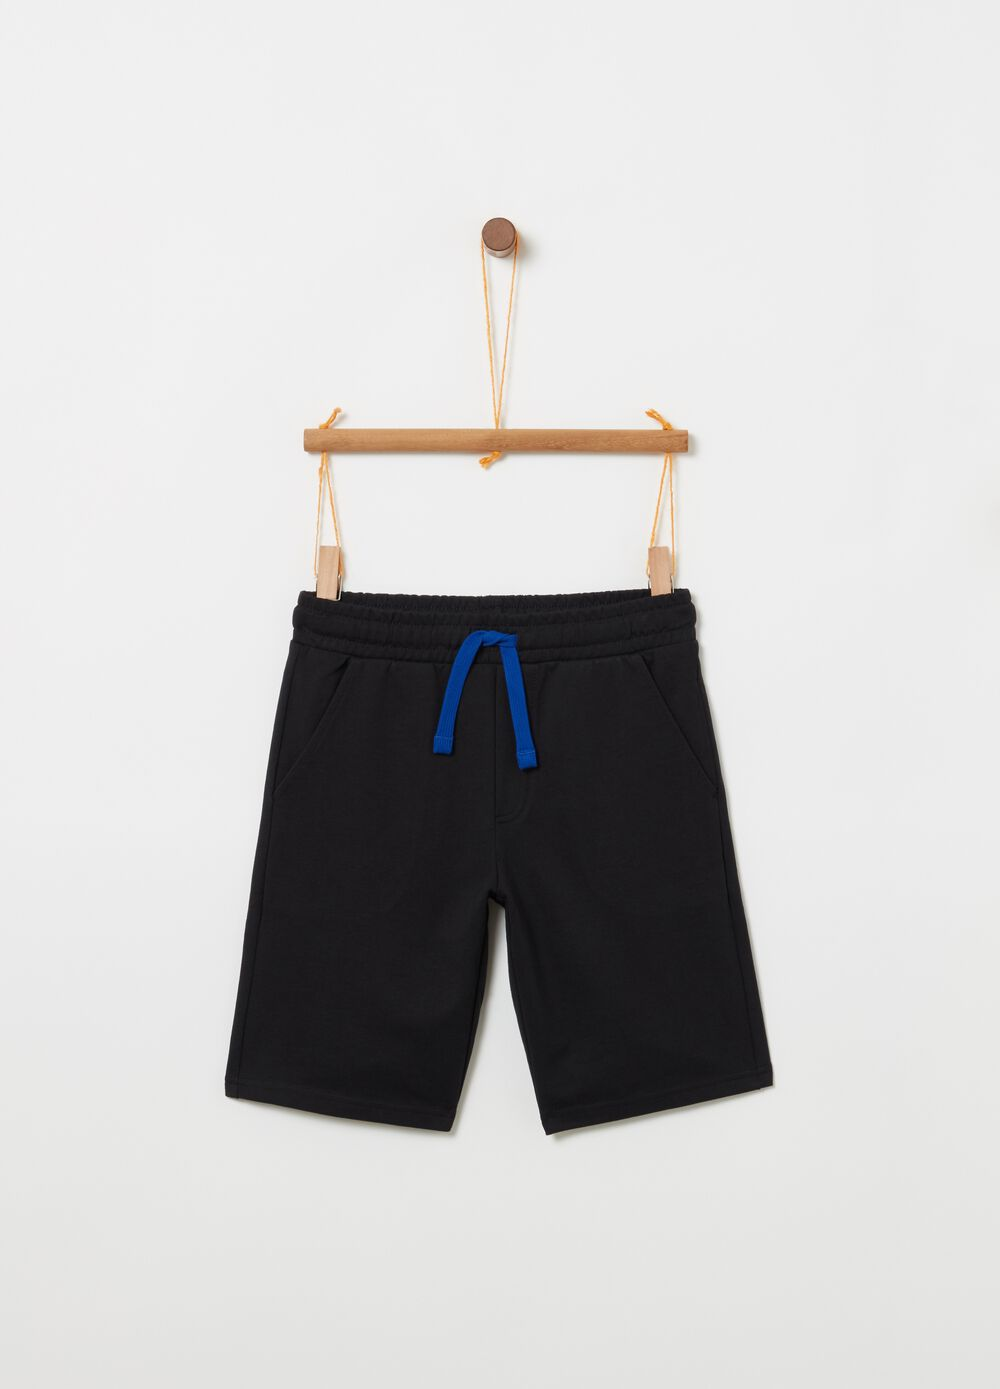 Solid colour 100% cotton shorts with drawstring